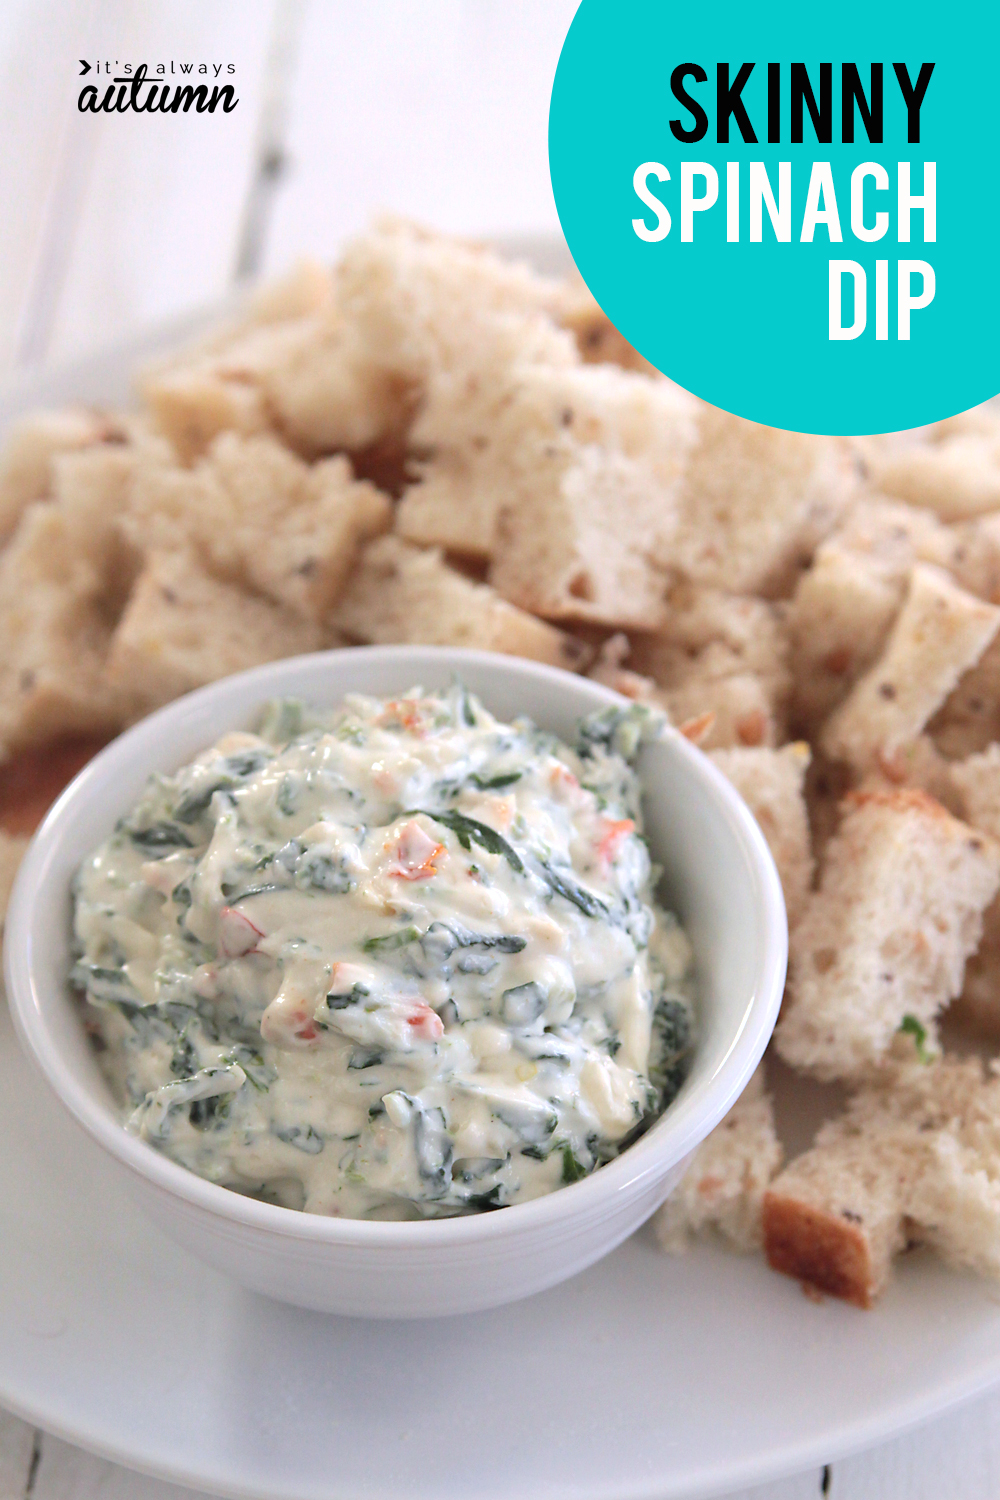 This skinny spinach dip has just a quarter the calories of the original! Perfect light dip for holidays and parties.